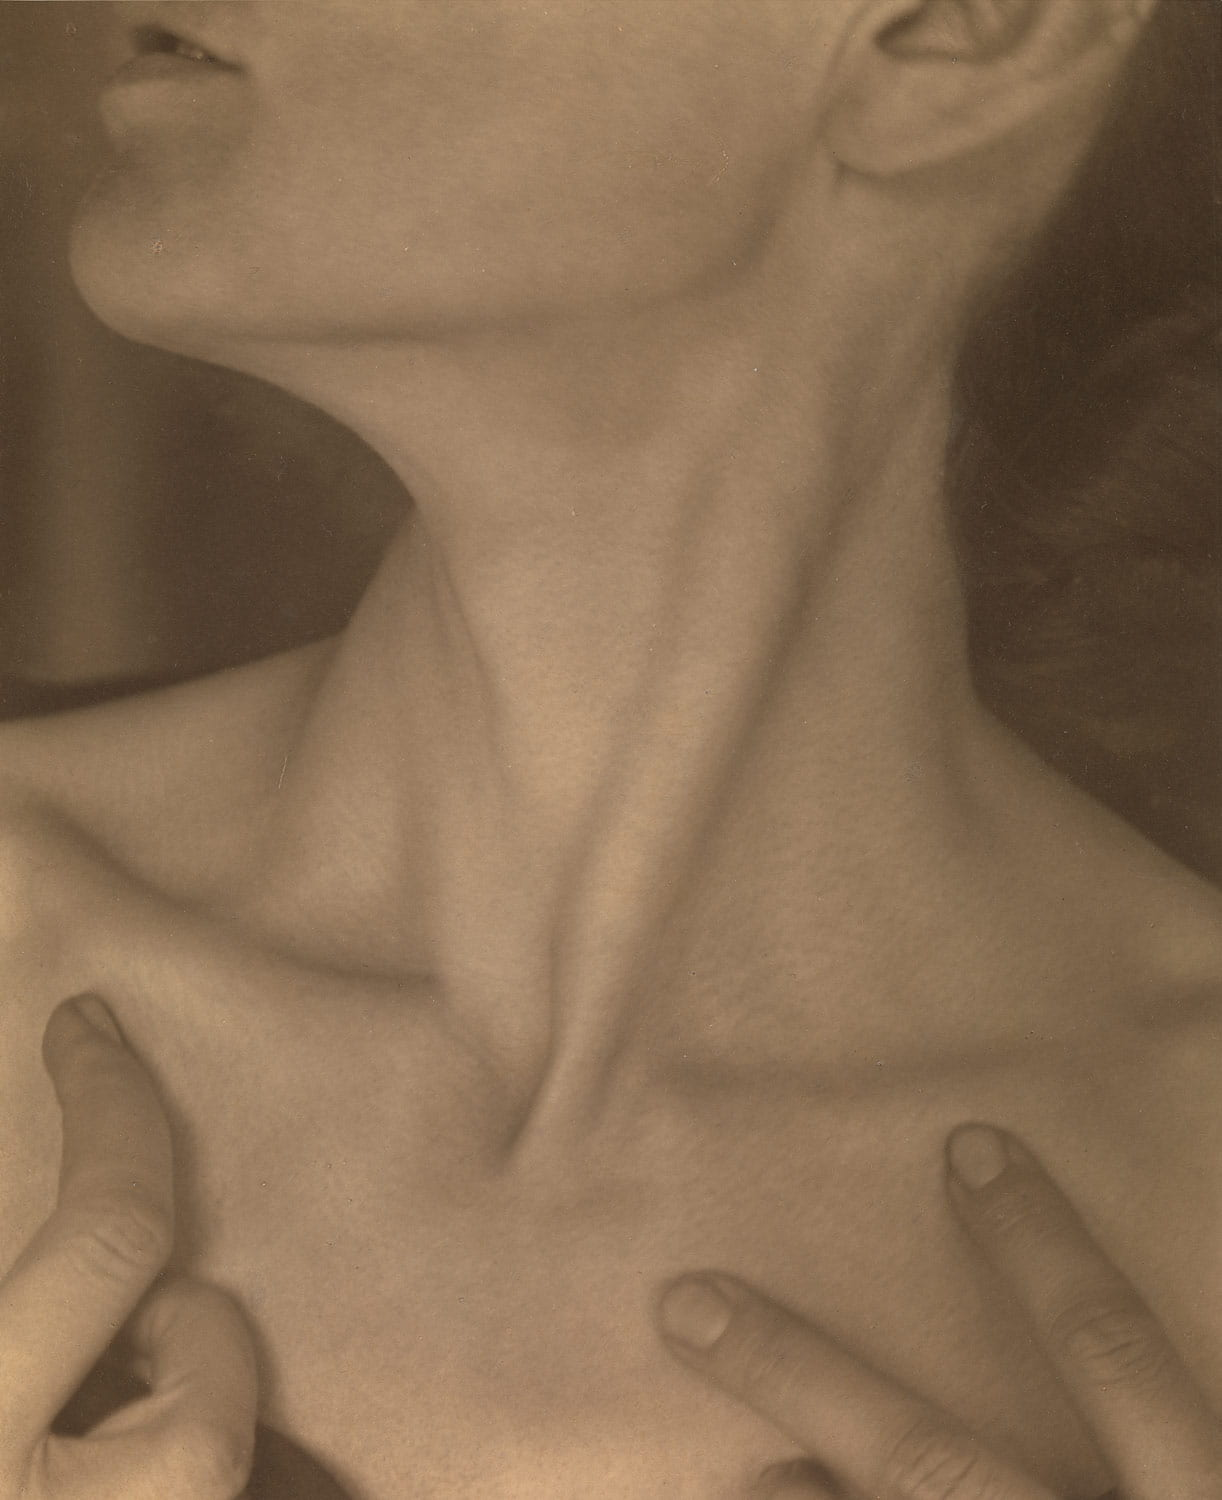 Fig. 8. Photograph of triangular musculature at the base of the neck.